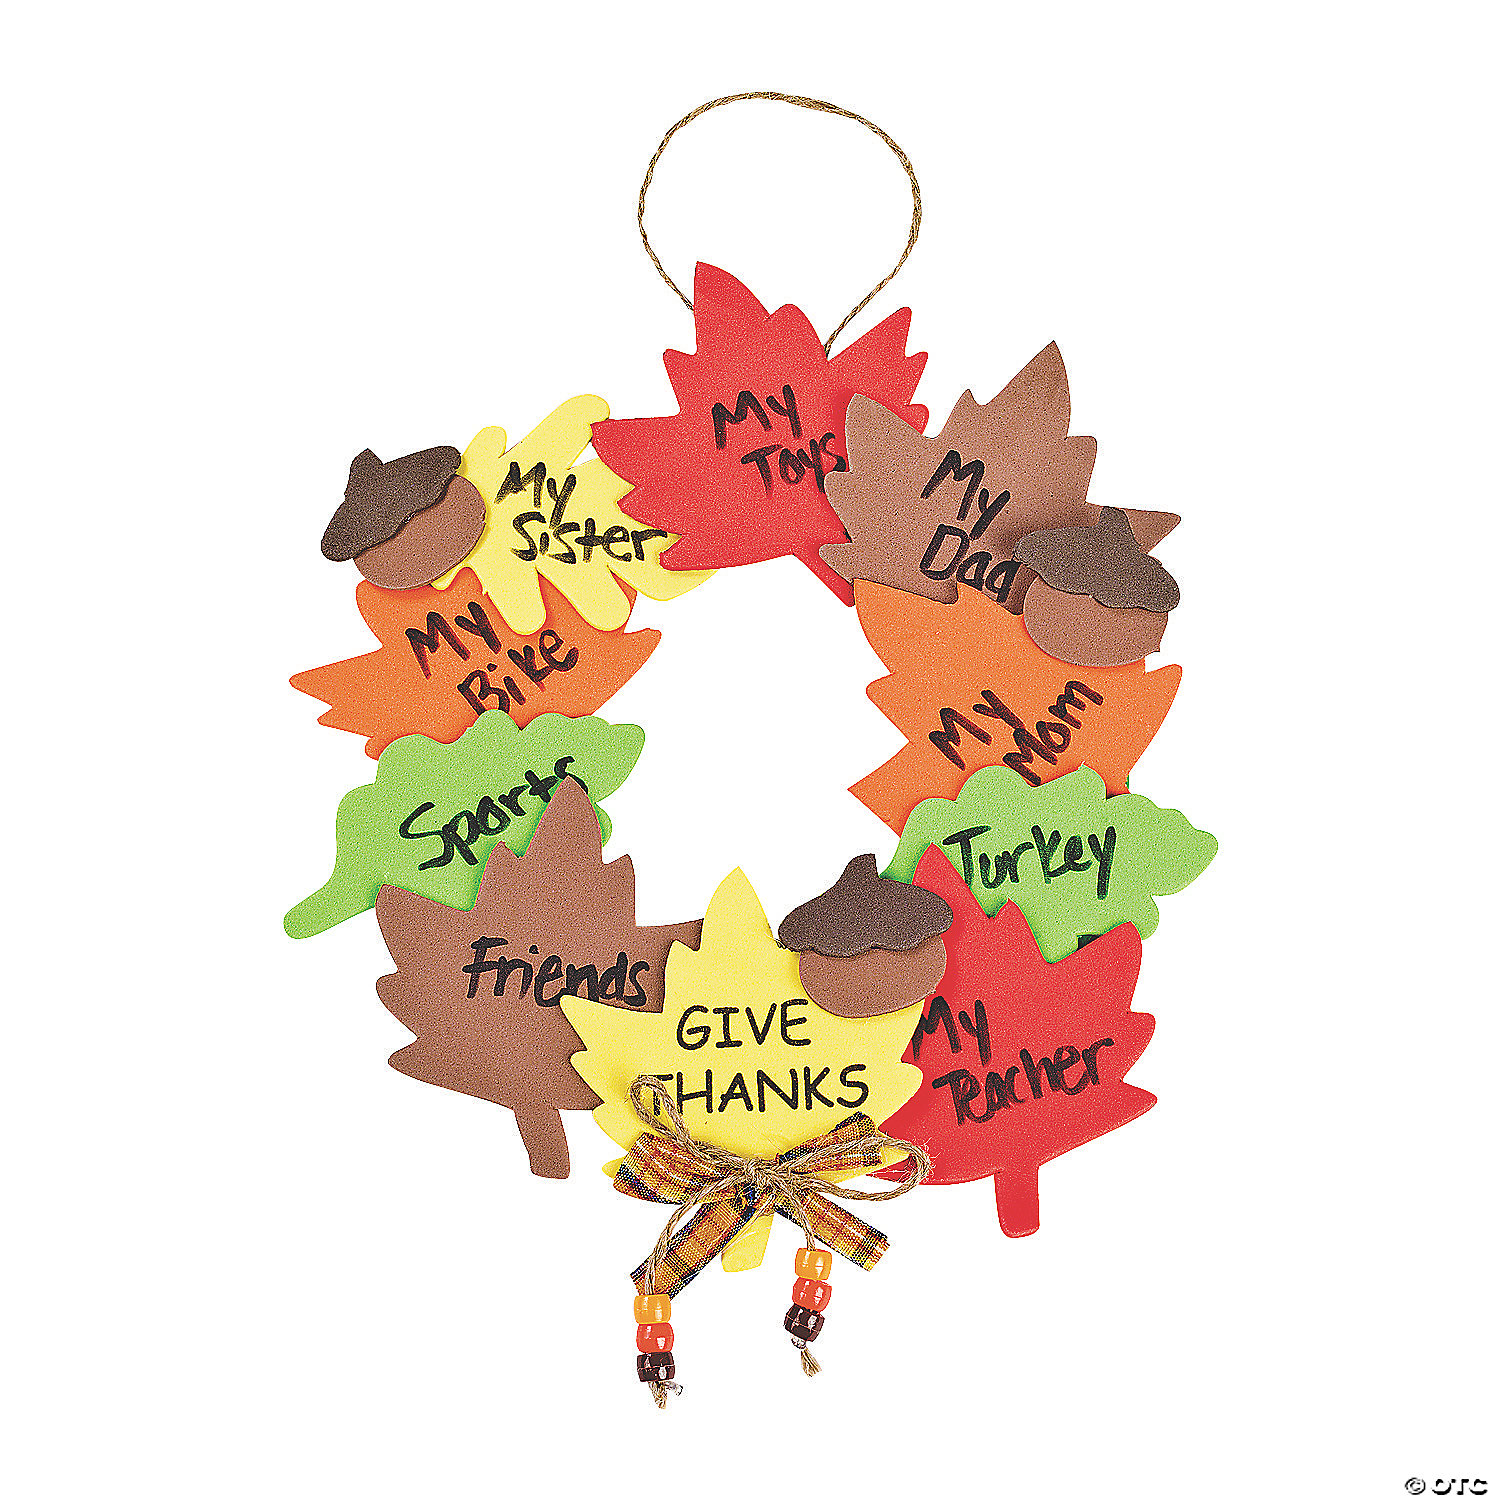 Oriental trading christian crafts - Wreath Of Thanks Craft Kit